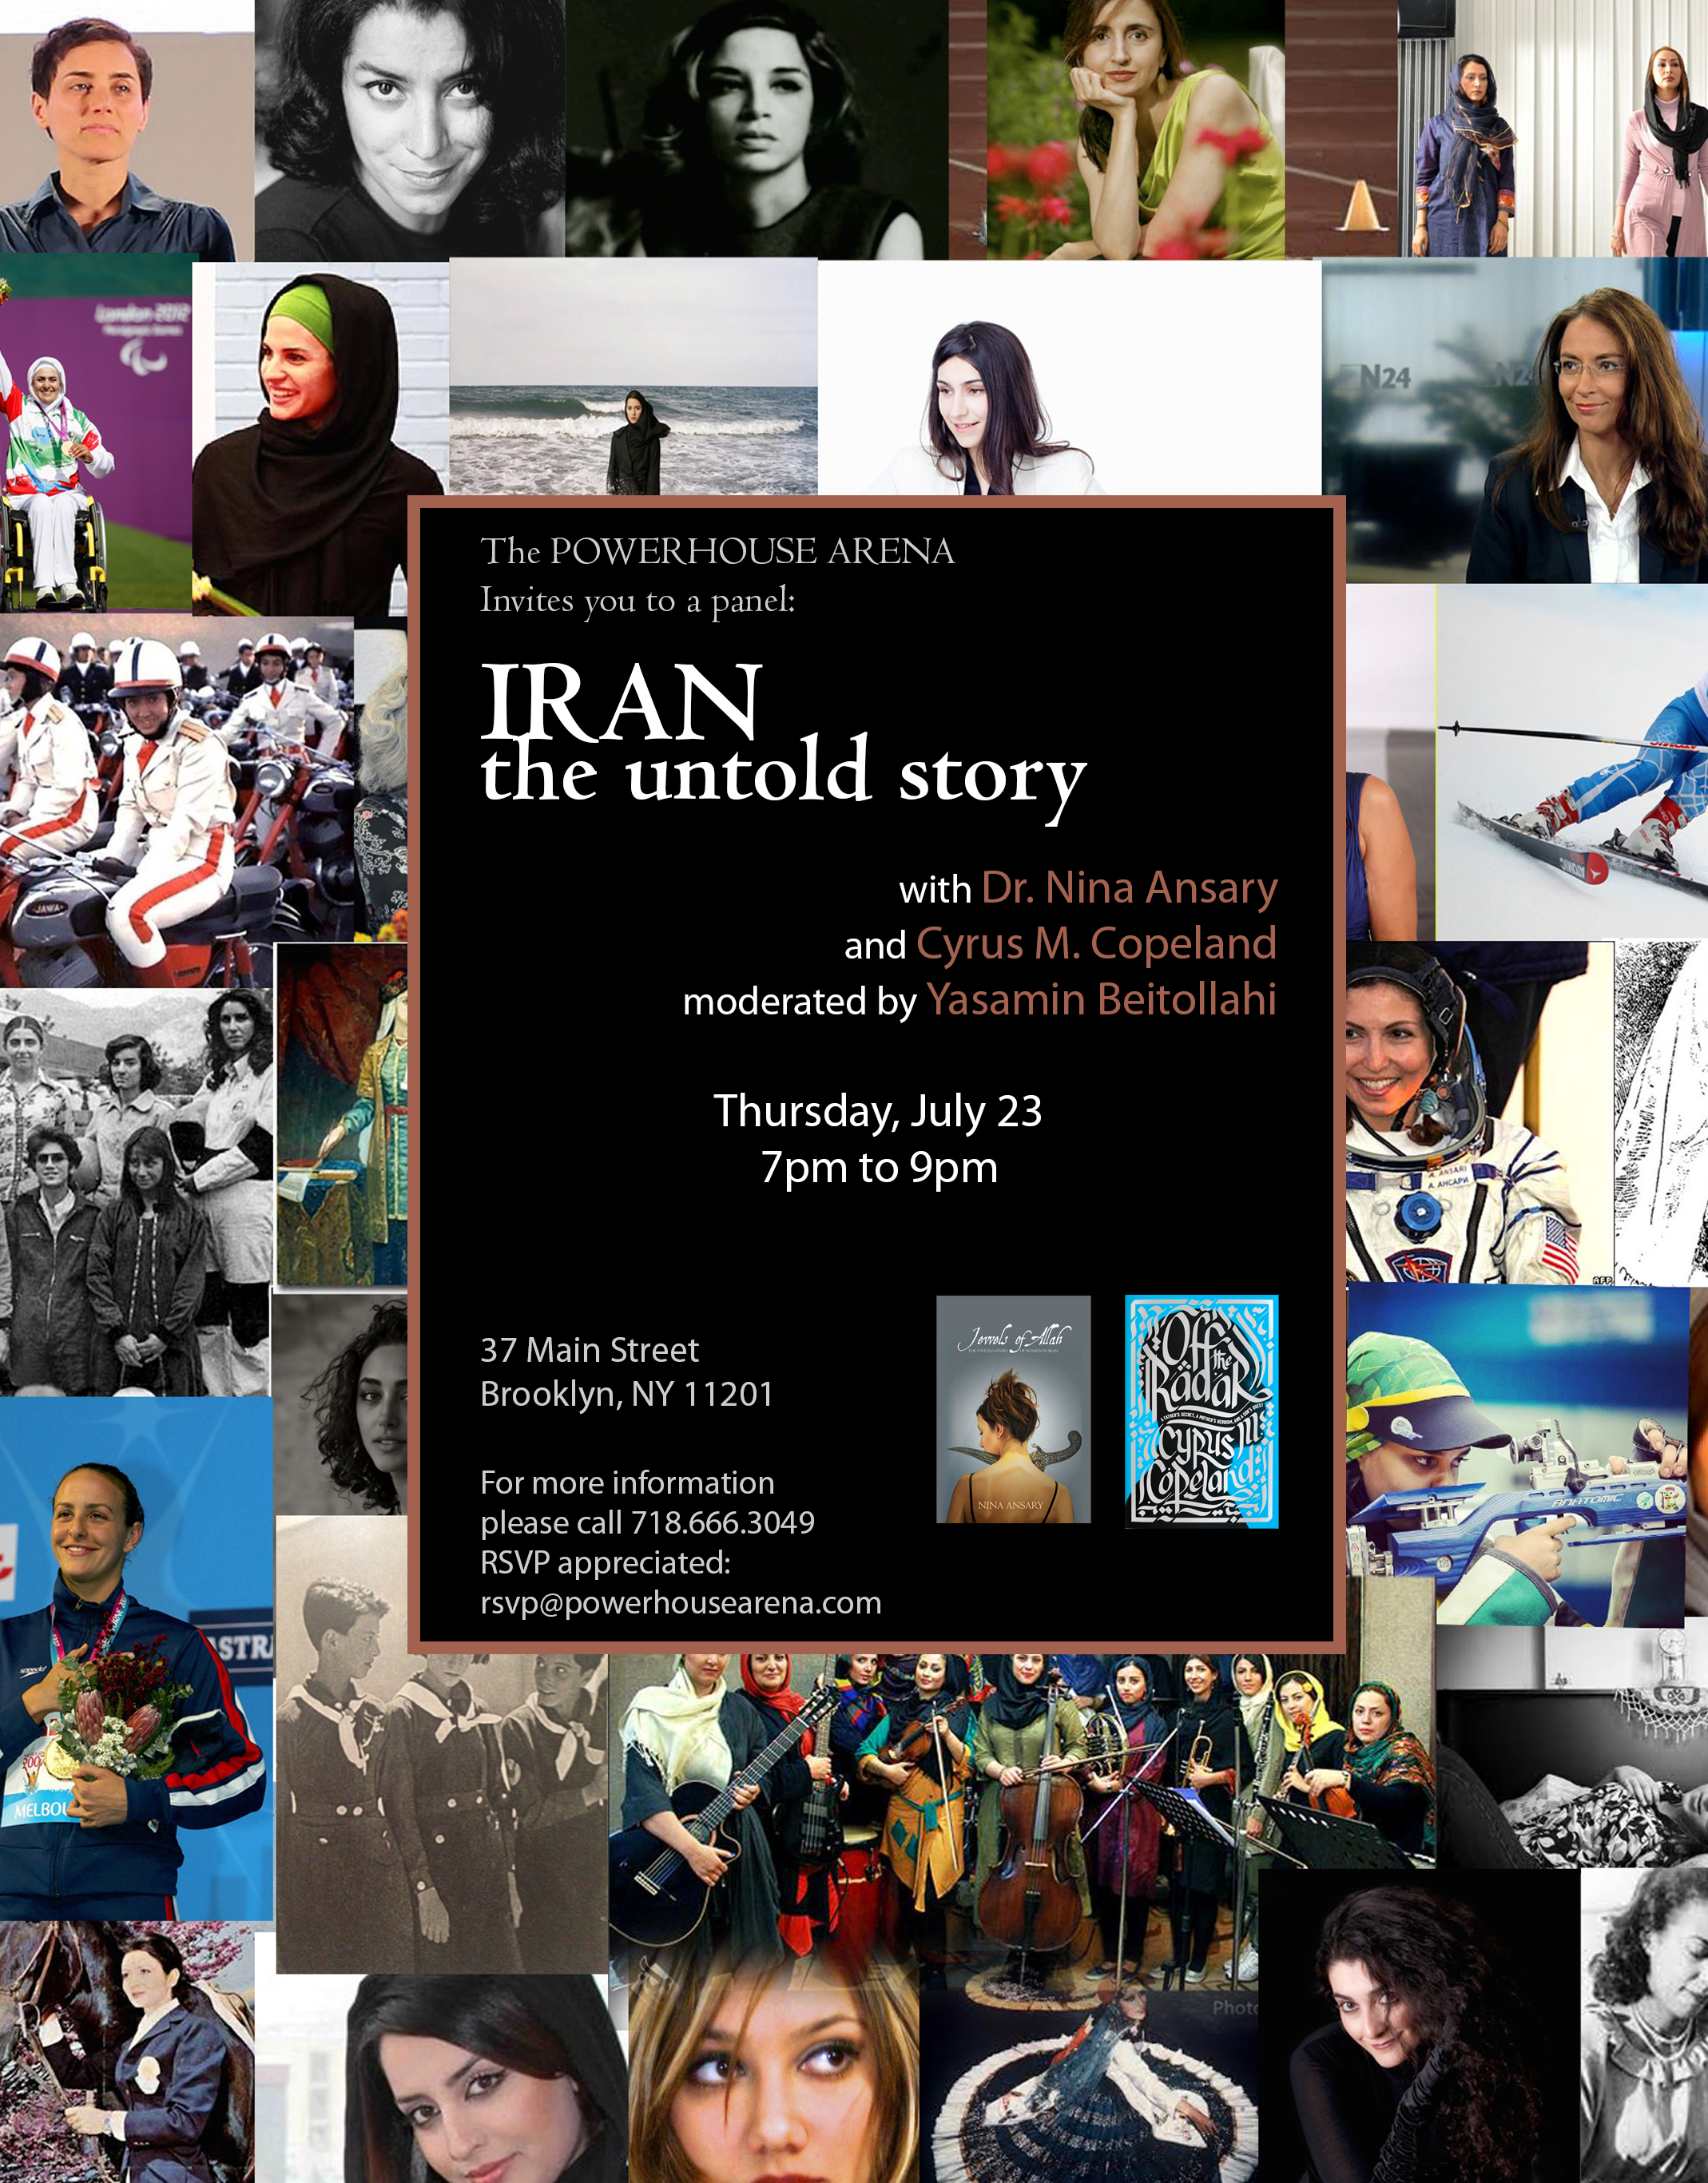 Book Launch and Panel Discussion: Iran – The Untold Story with Dr. Nina Ansary and Cyrus M. Copeland moderated by Yasiman Beitollahi